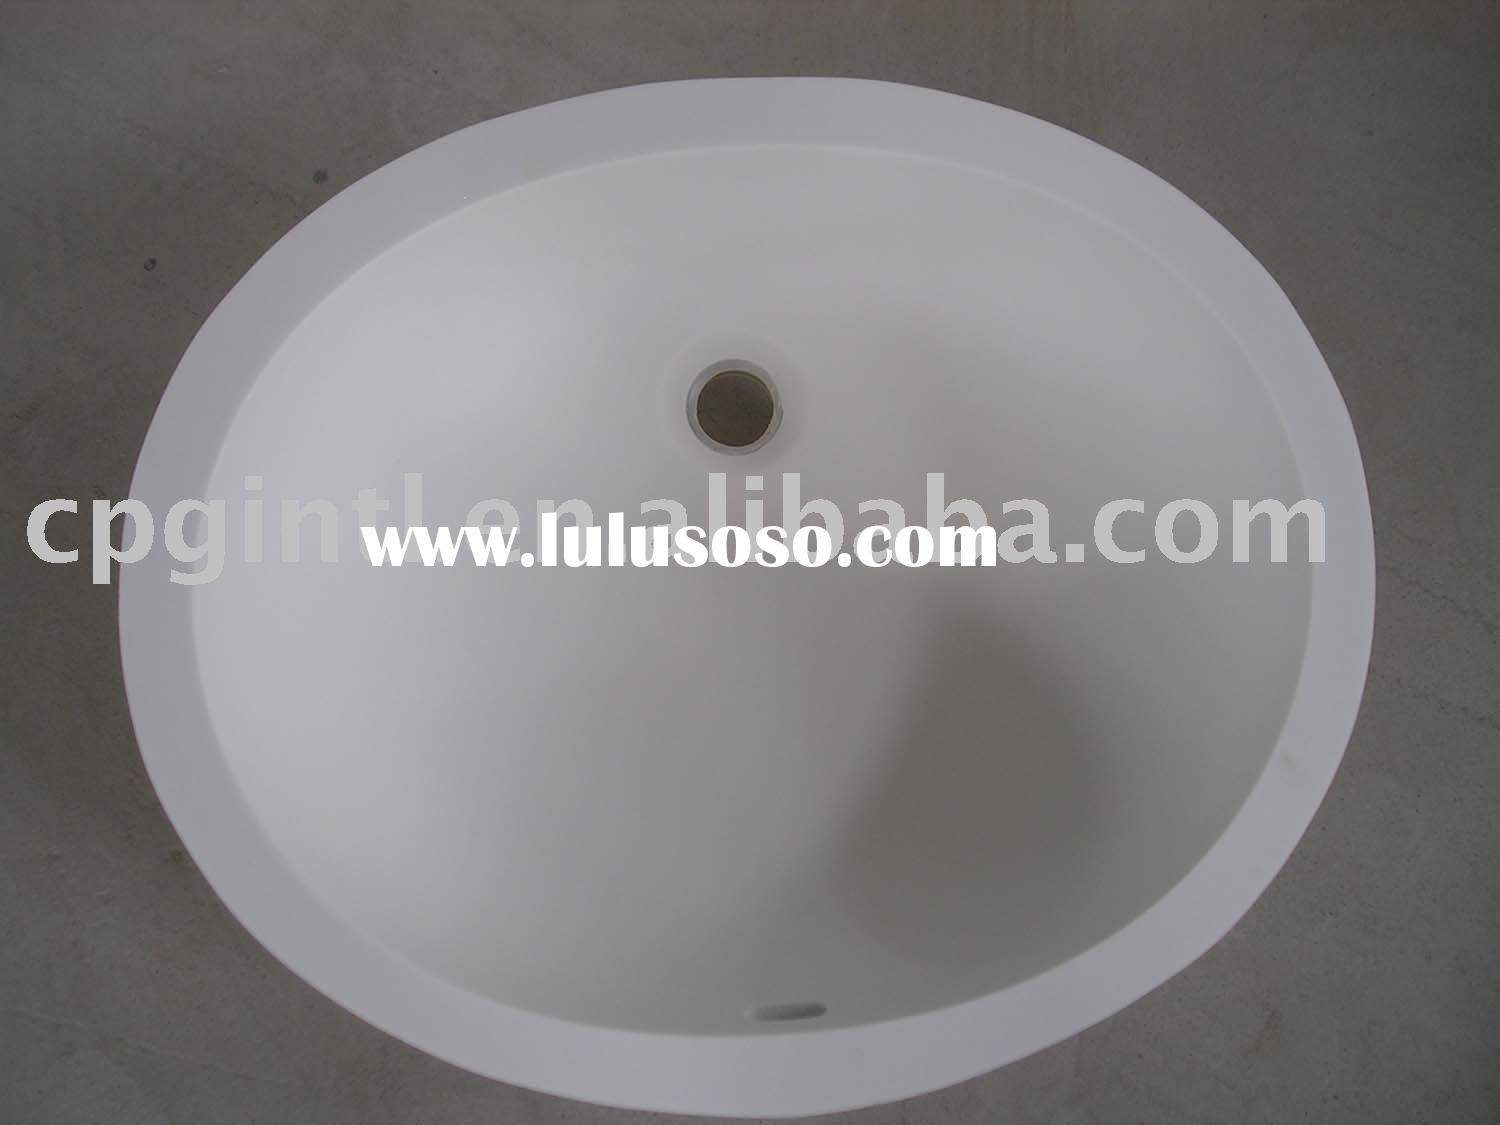 Corian Solid Surface Sink